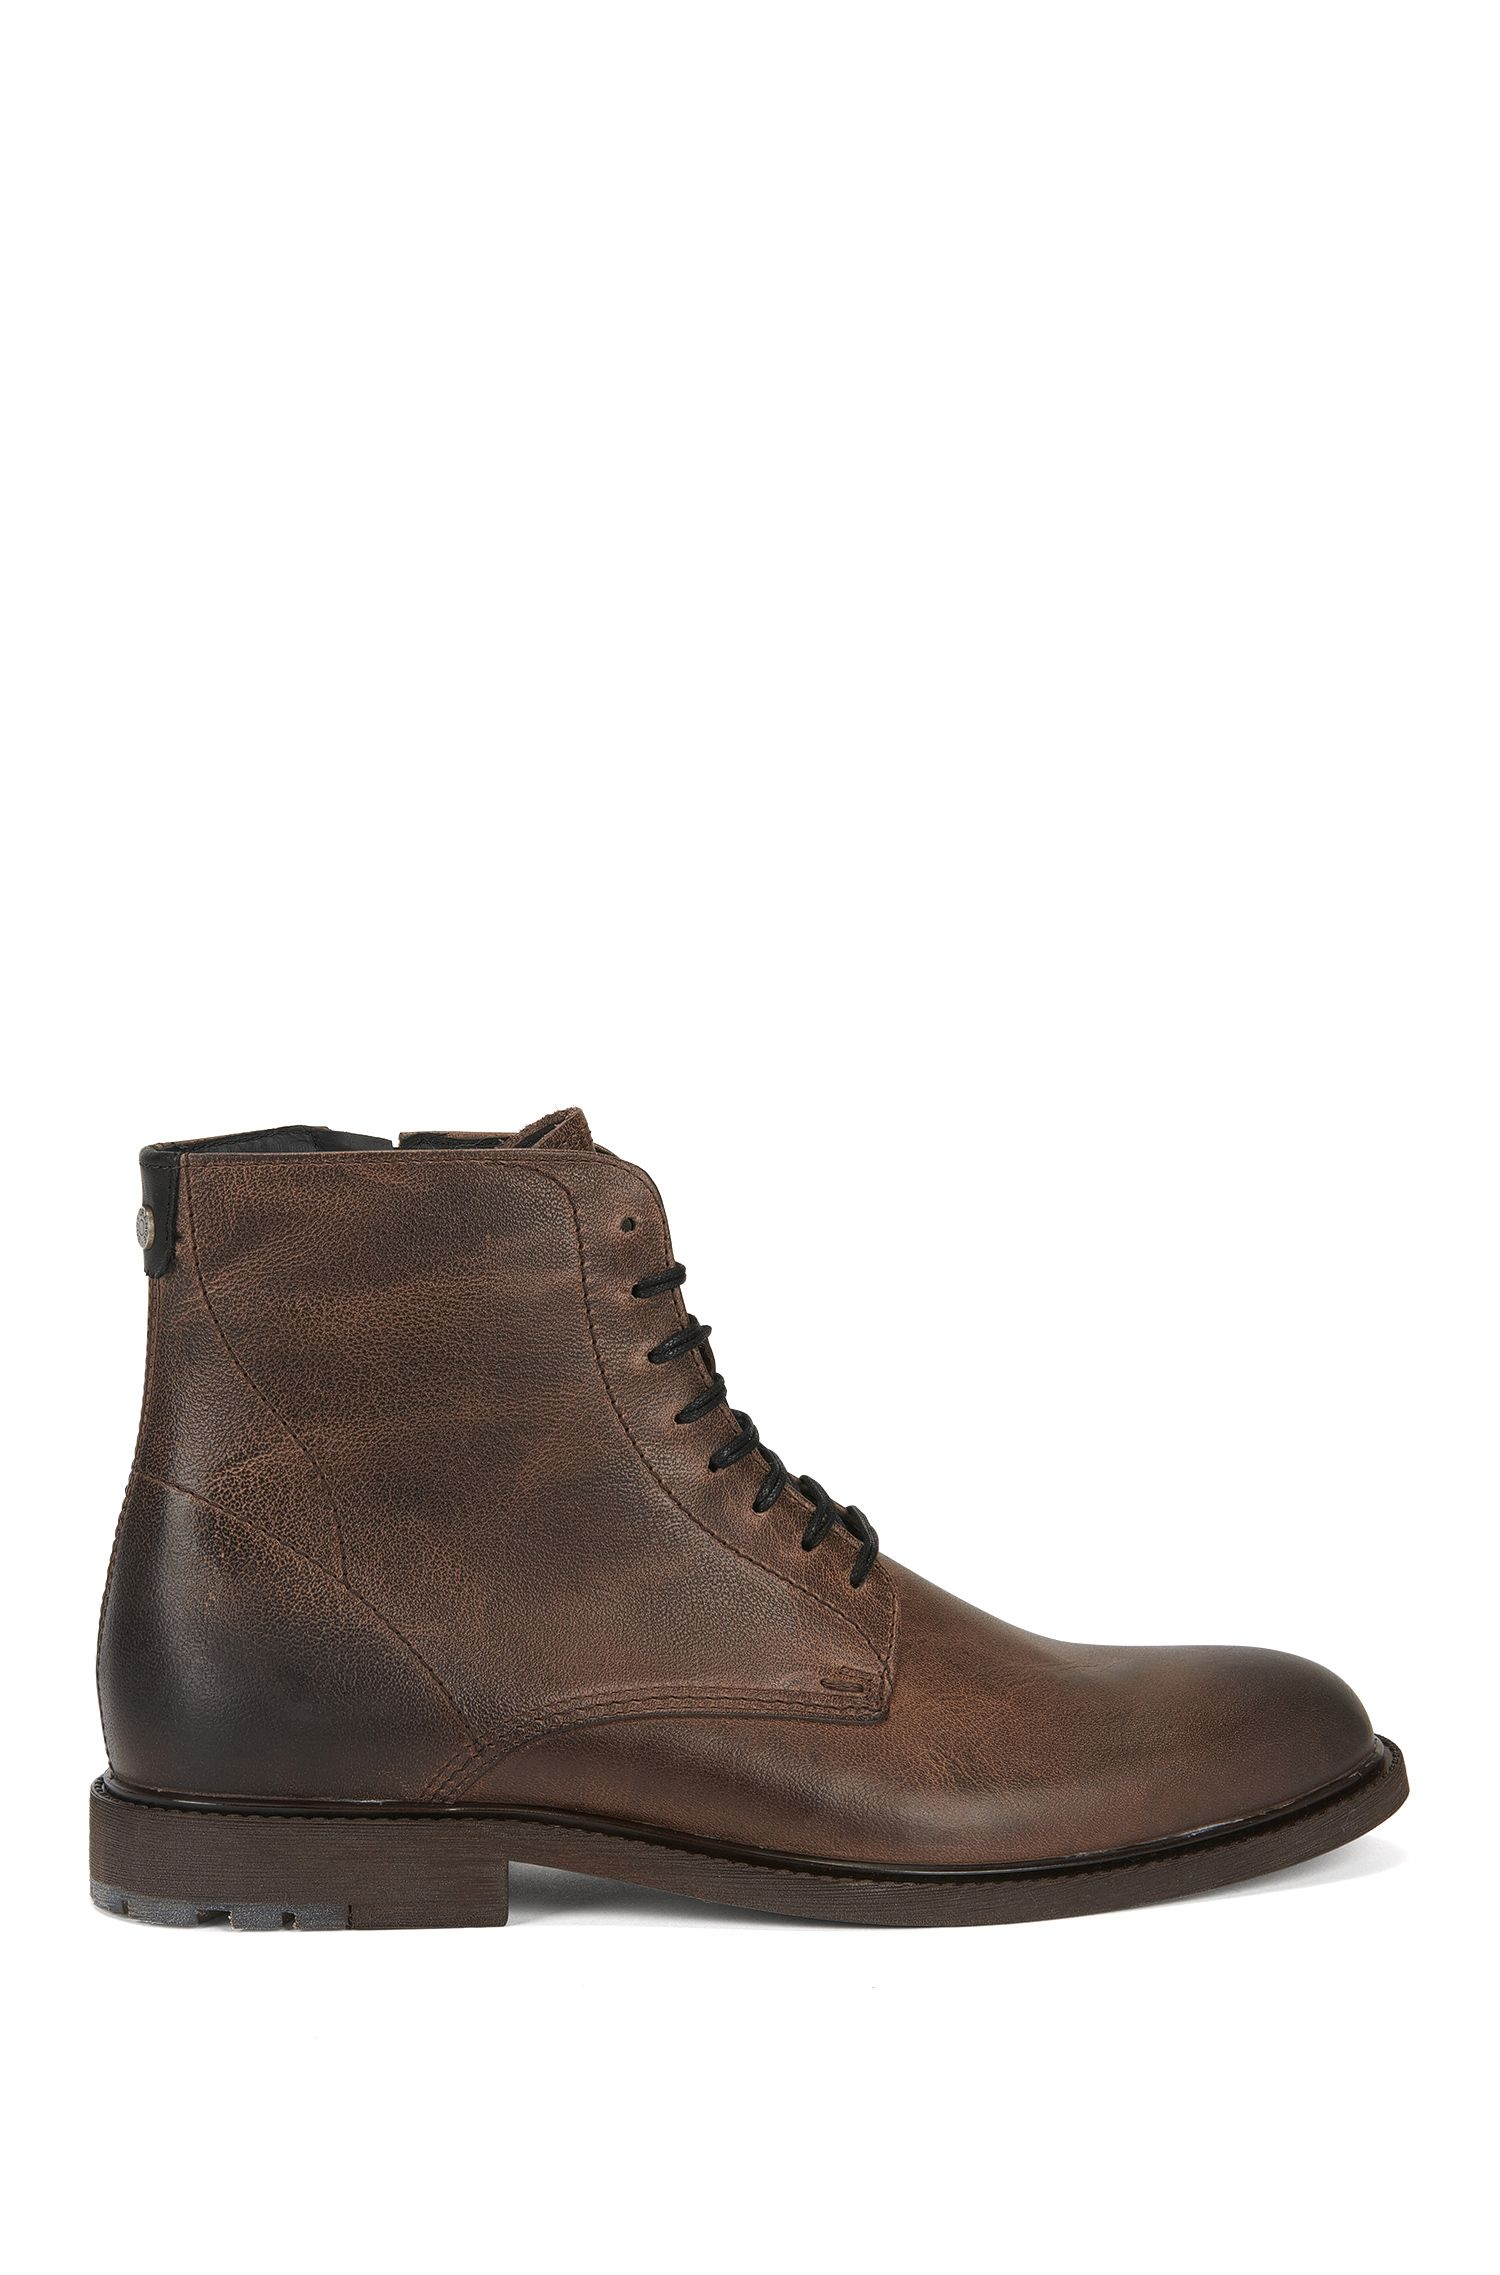 'Cultroots Halb Pp' | Leather Boots